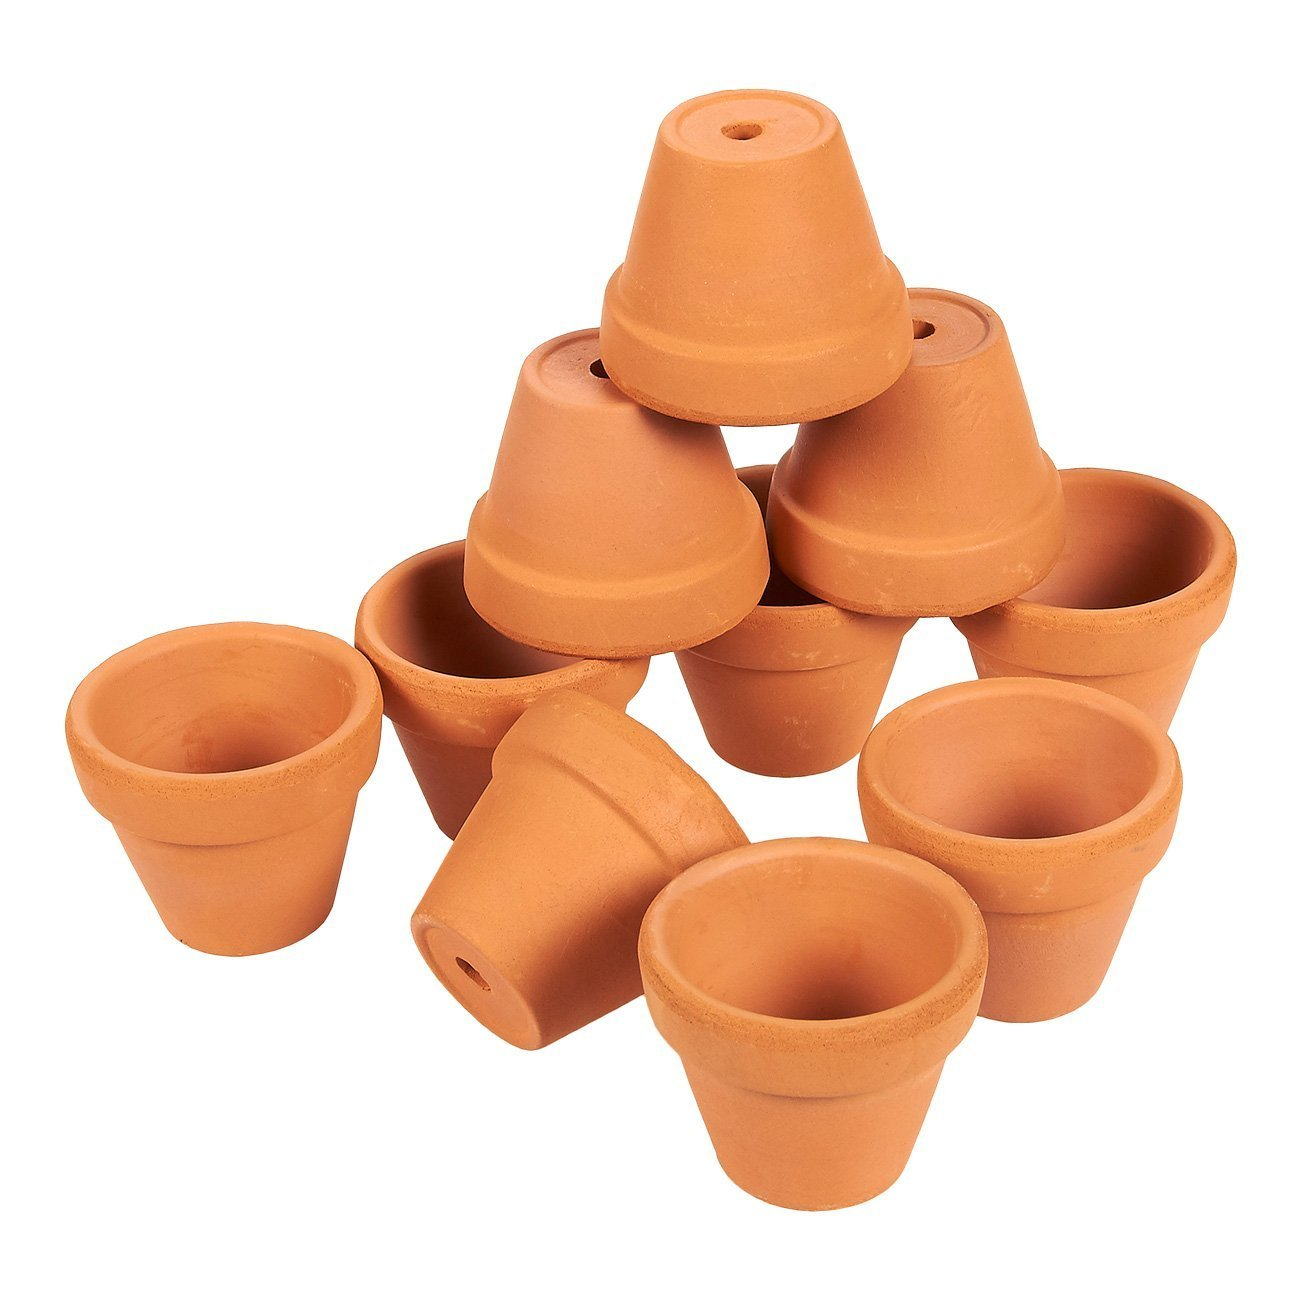 Para-wish Mini Terracotta Clay Pots - Great For Succulent & Cactus Nursery Planter, DIY Craft Projects, Wedding and Party Favors (16 Pack)